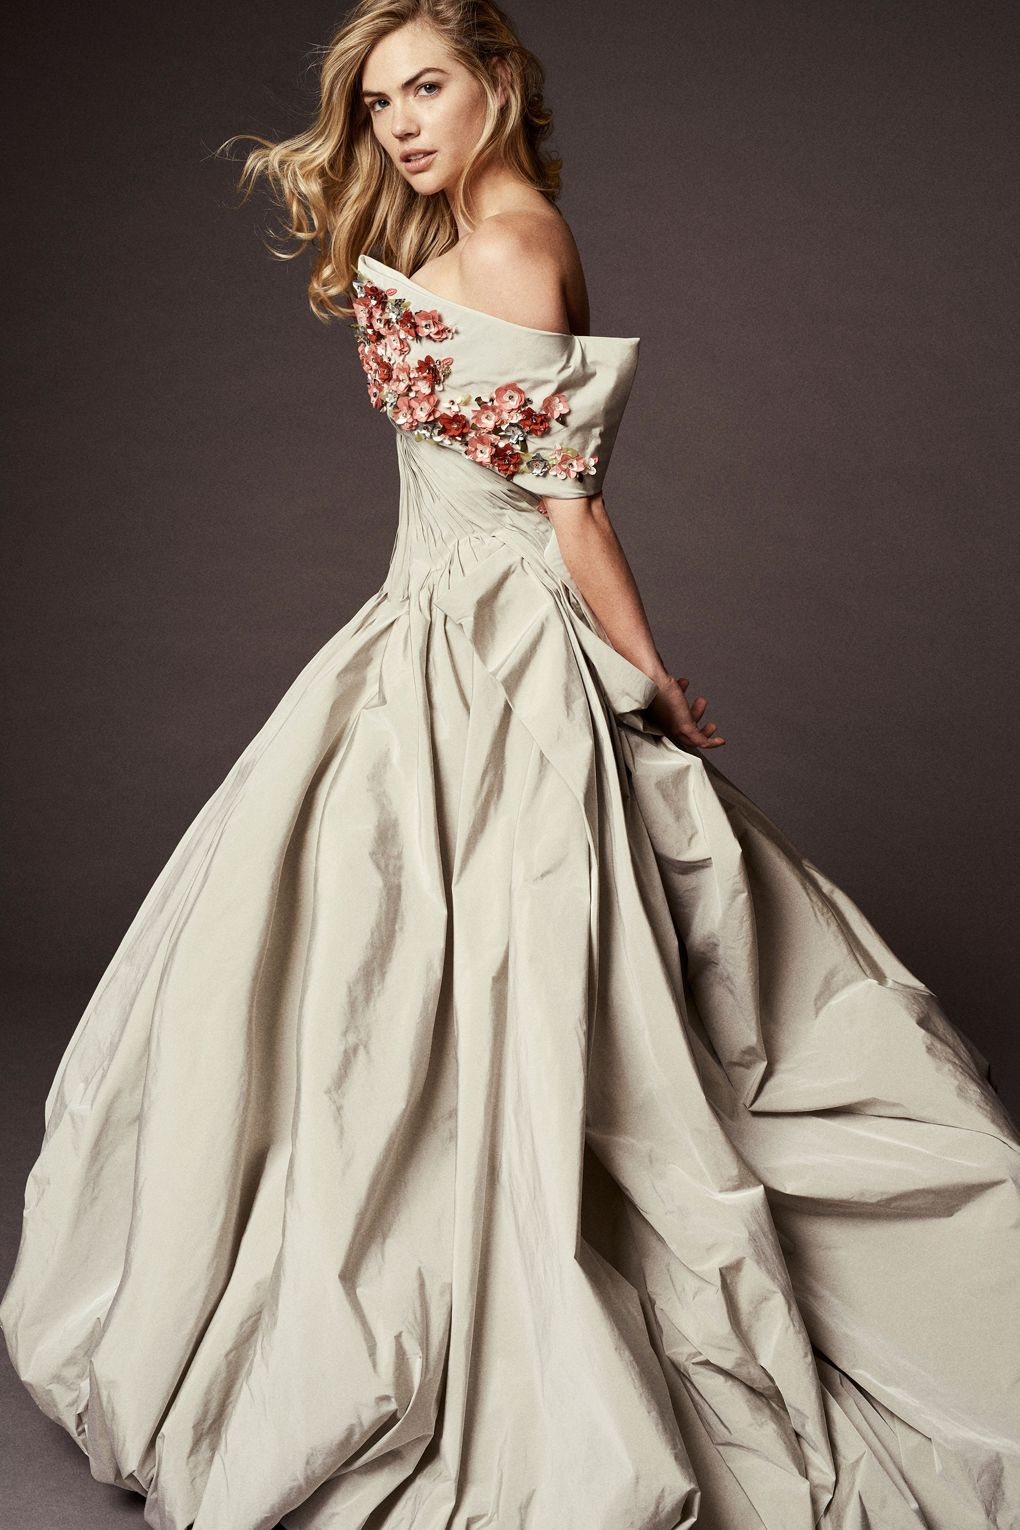 The Ball Gown spring/summer 2018